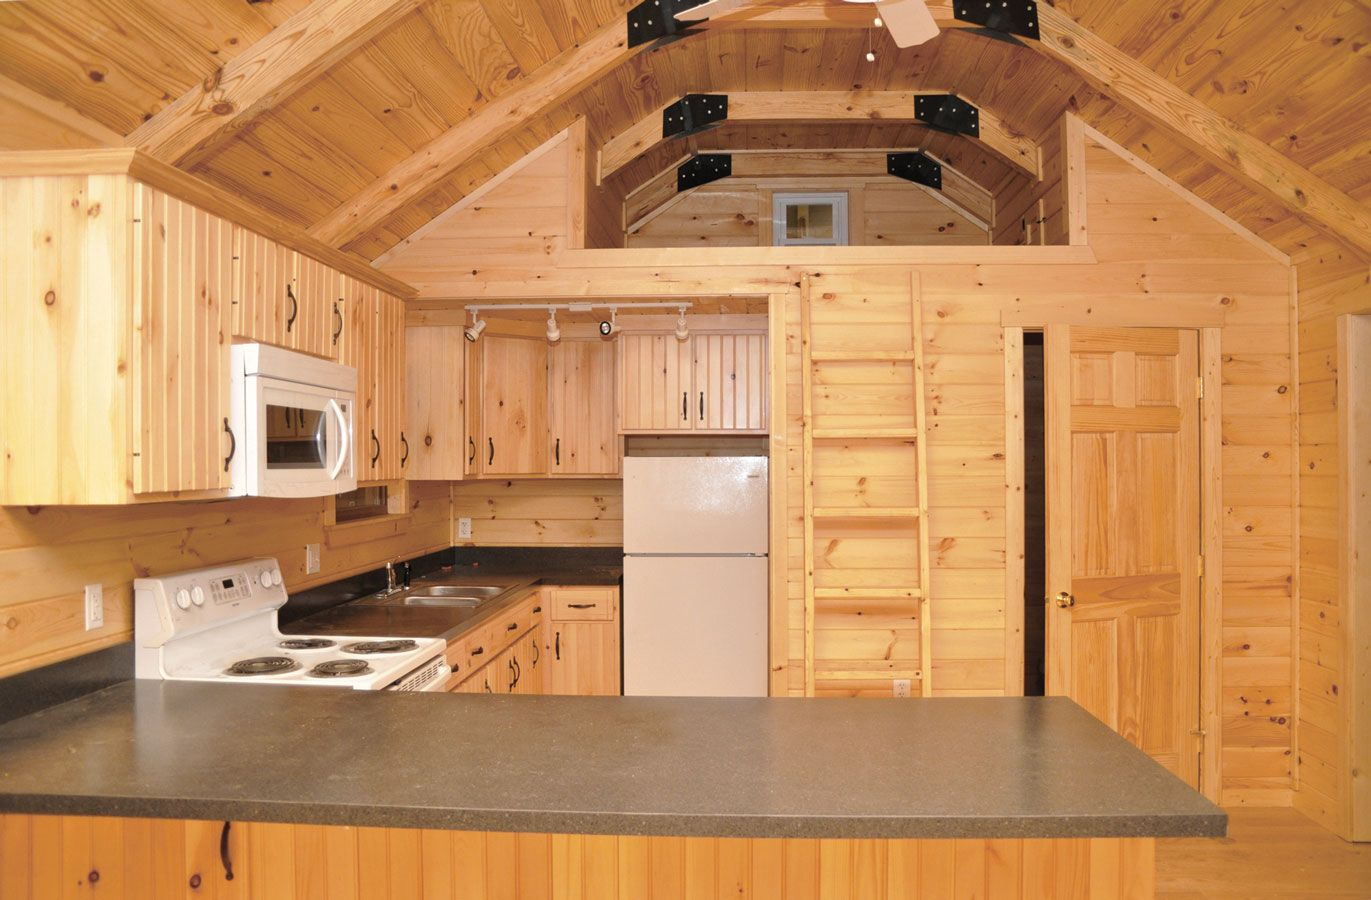 This Bertsch Utah Log Cabin From Simply Log Cabins In The United Kingdom Is The Perfect Little Bac Cheap Tiny House Shed To Tiny House Cheap Storage Sheds